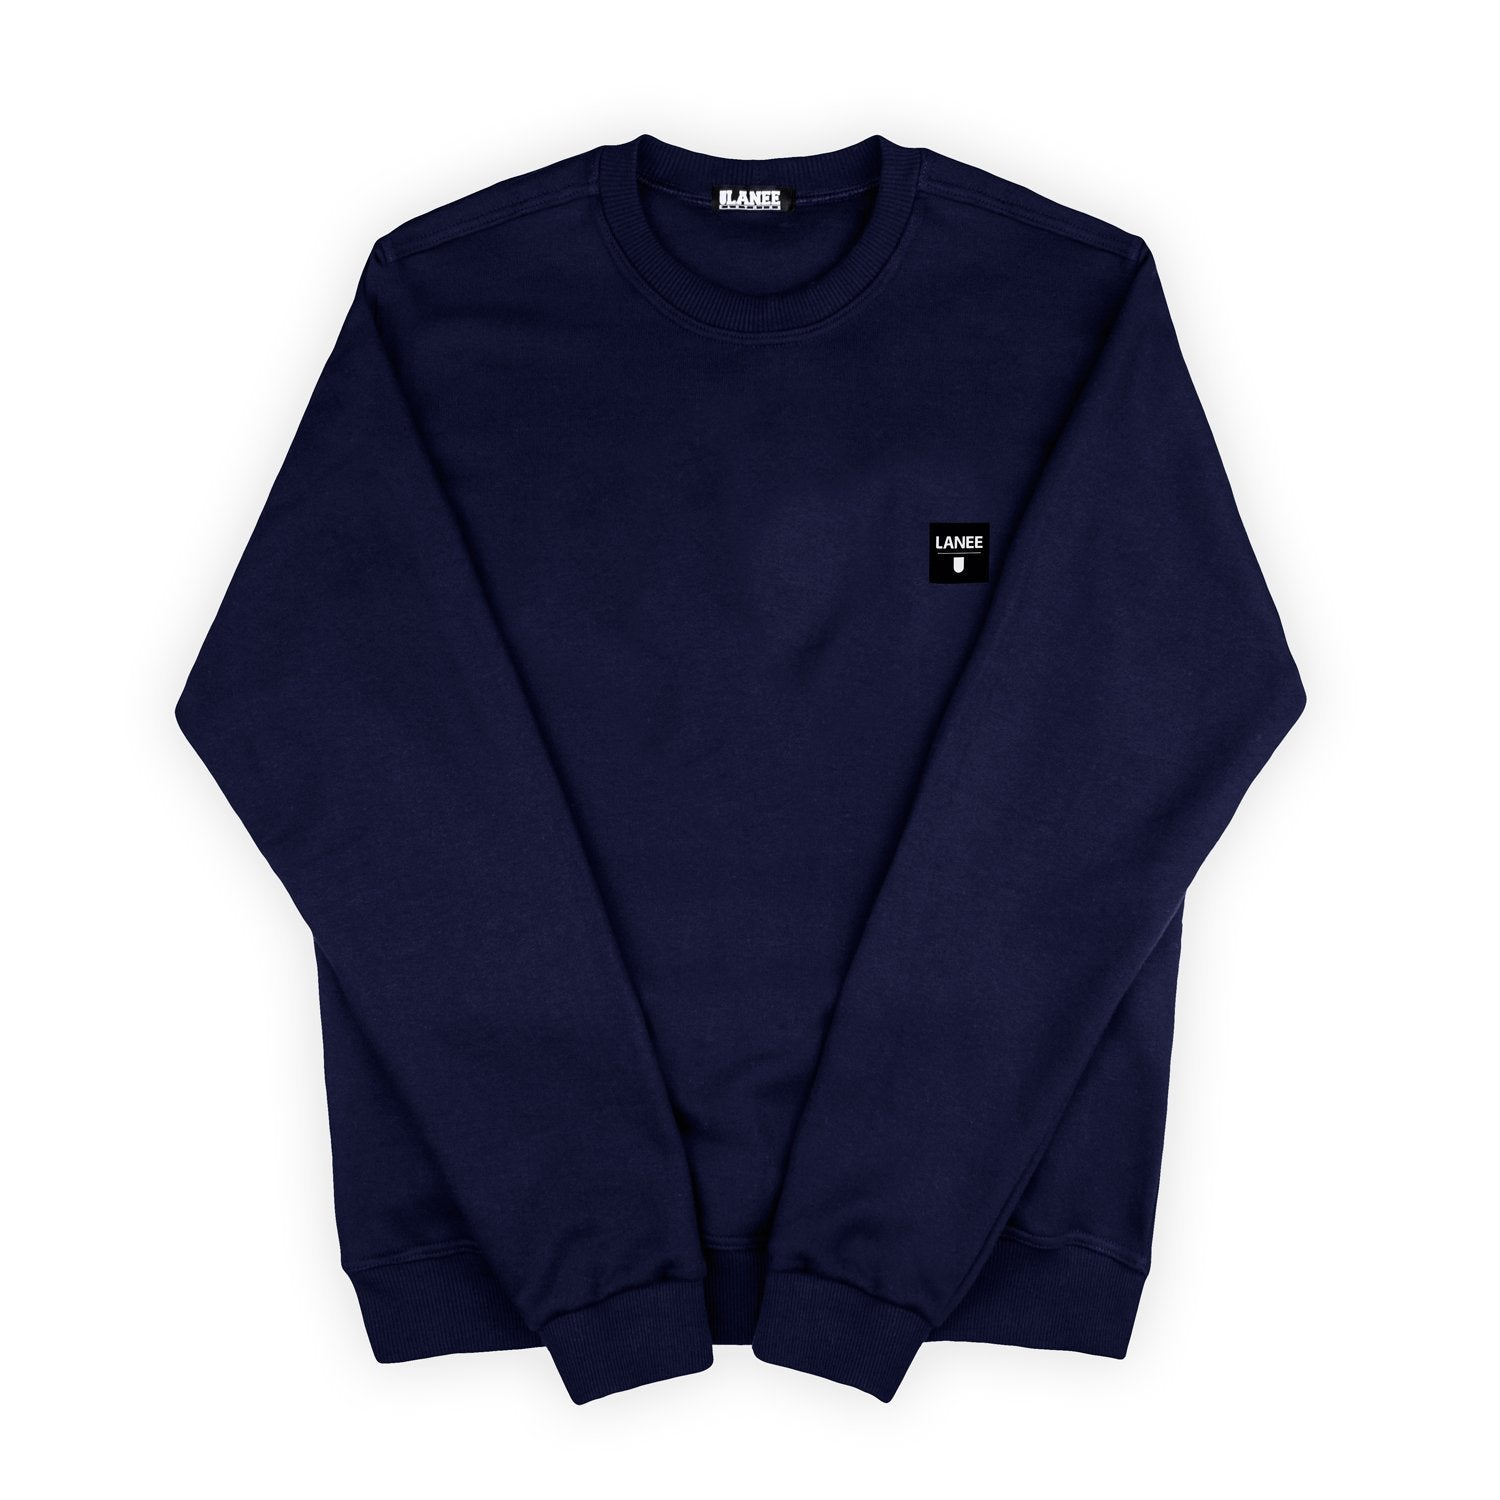 SWEAT - NAVY BLUE BLANK CREWNECK